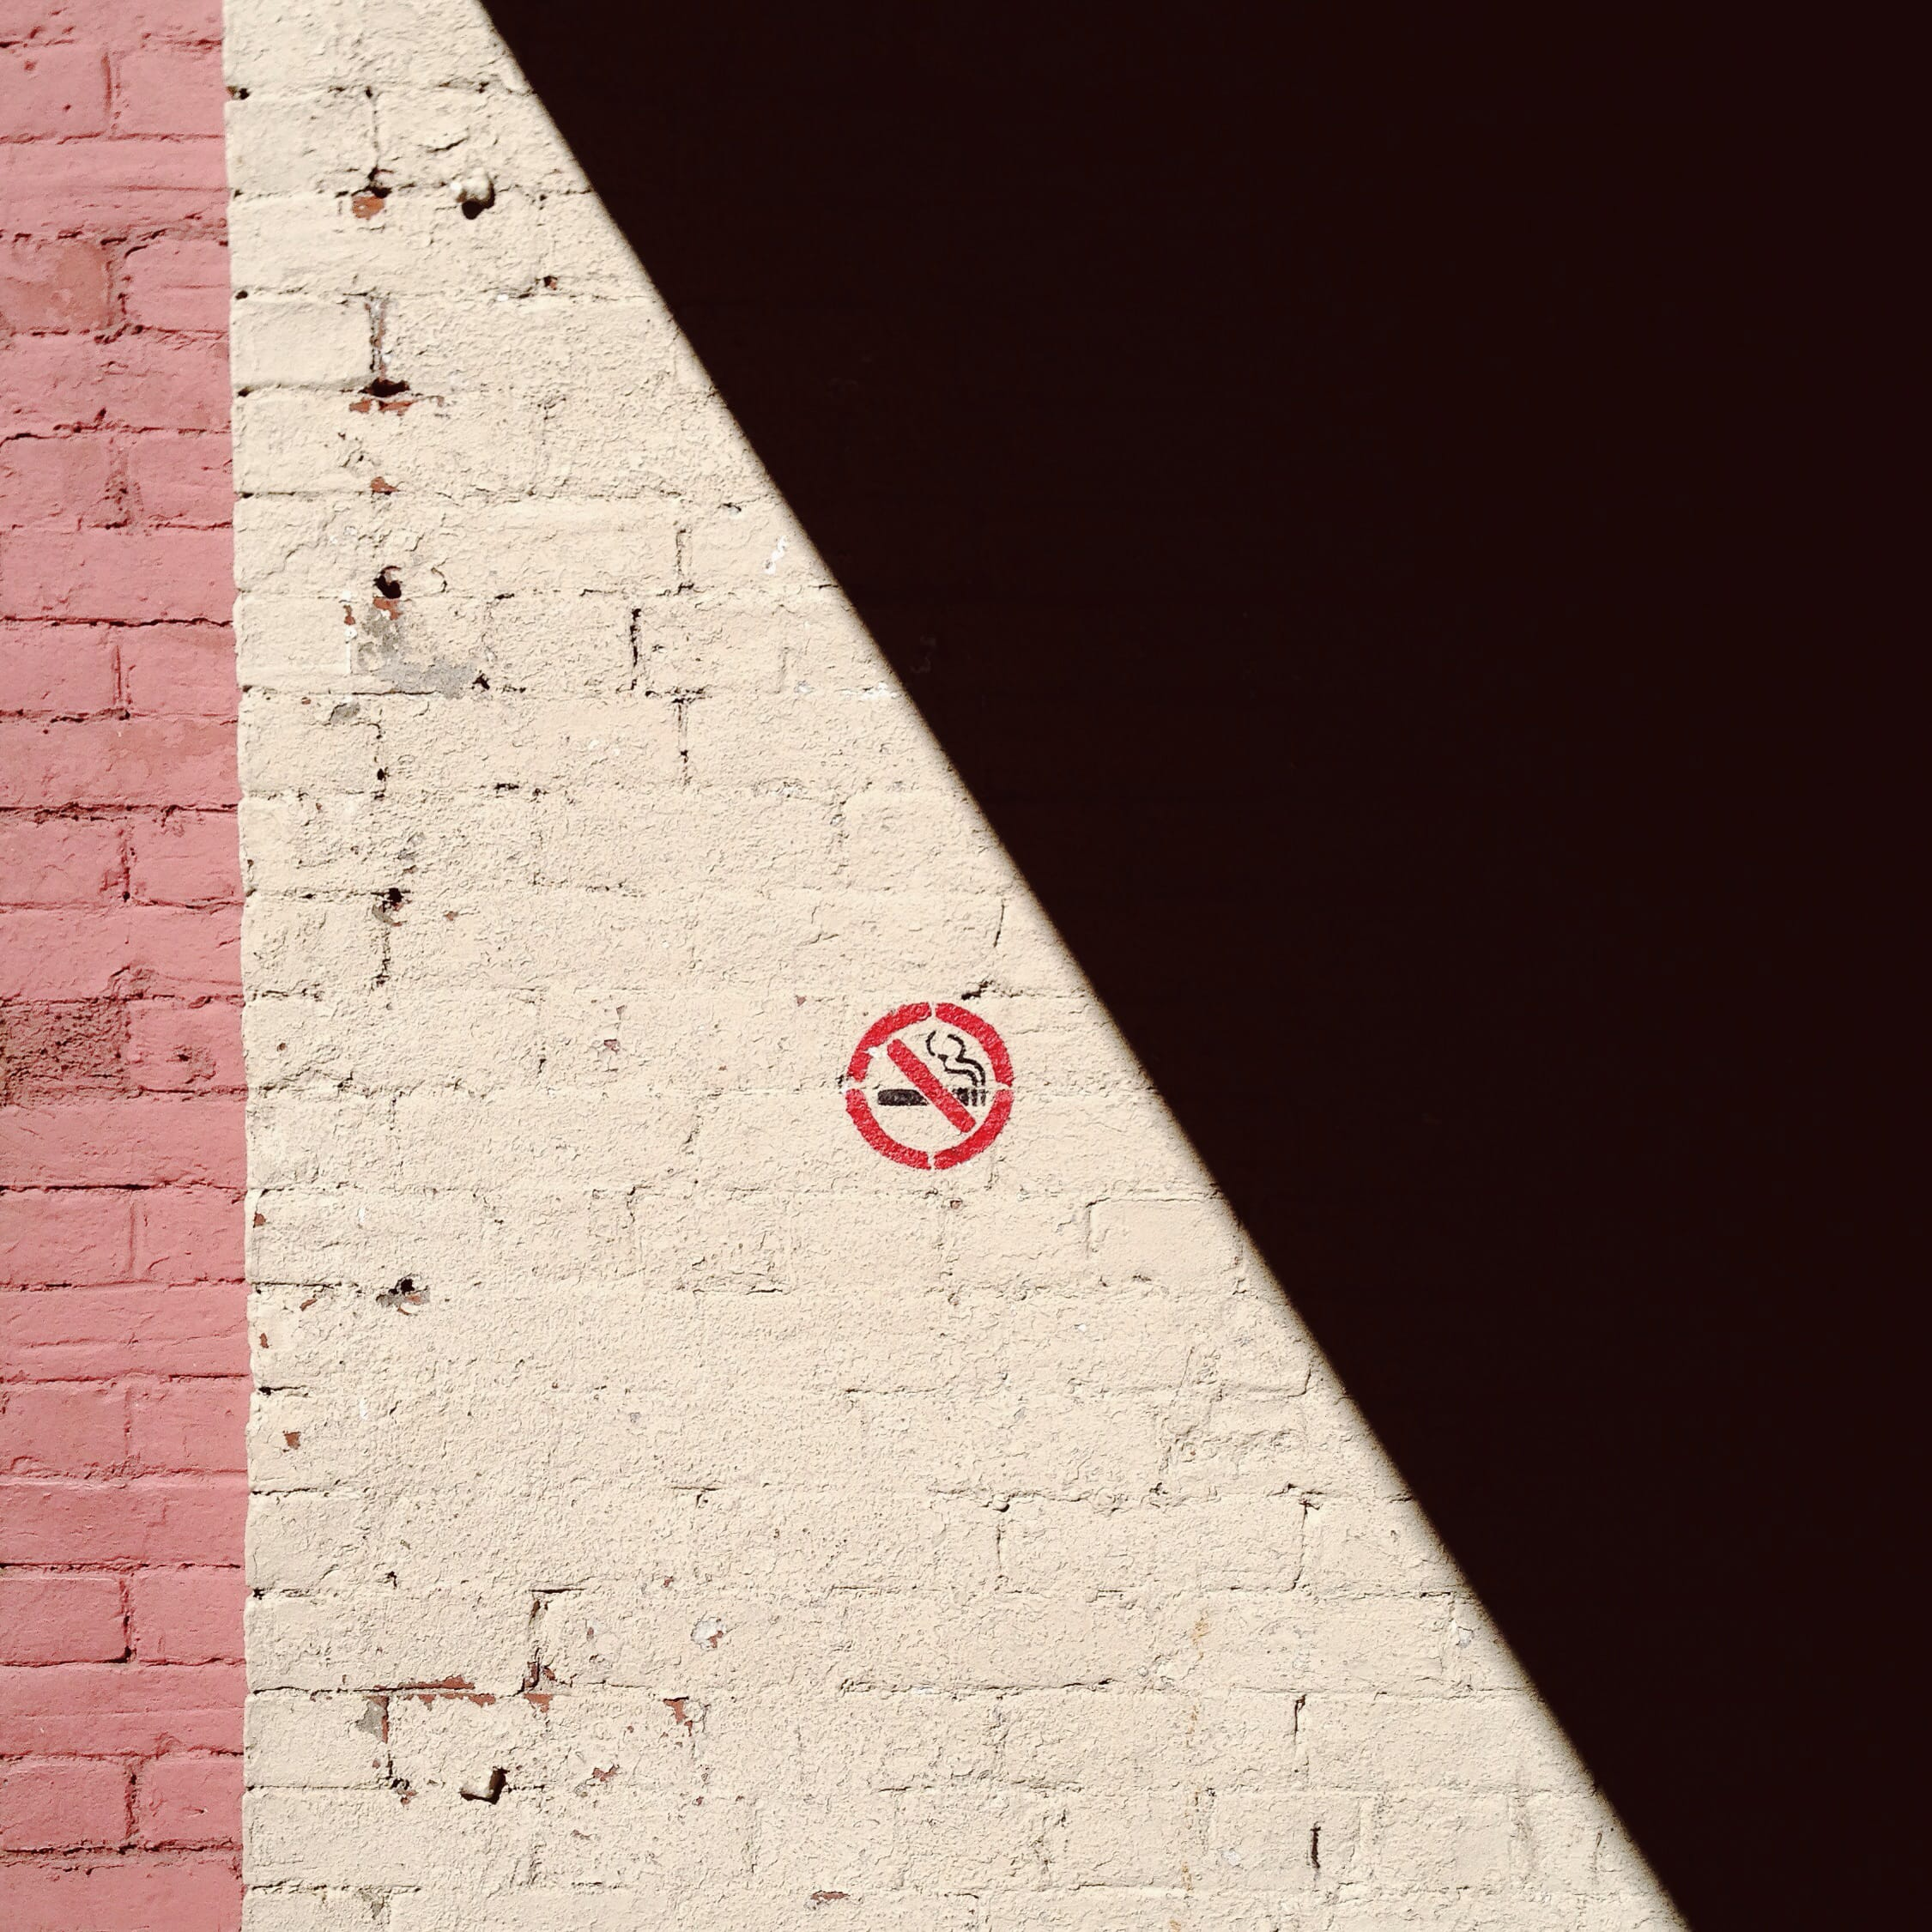 A photograph depicting No Smoking on Prince William Street